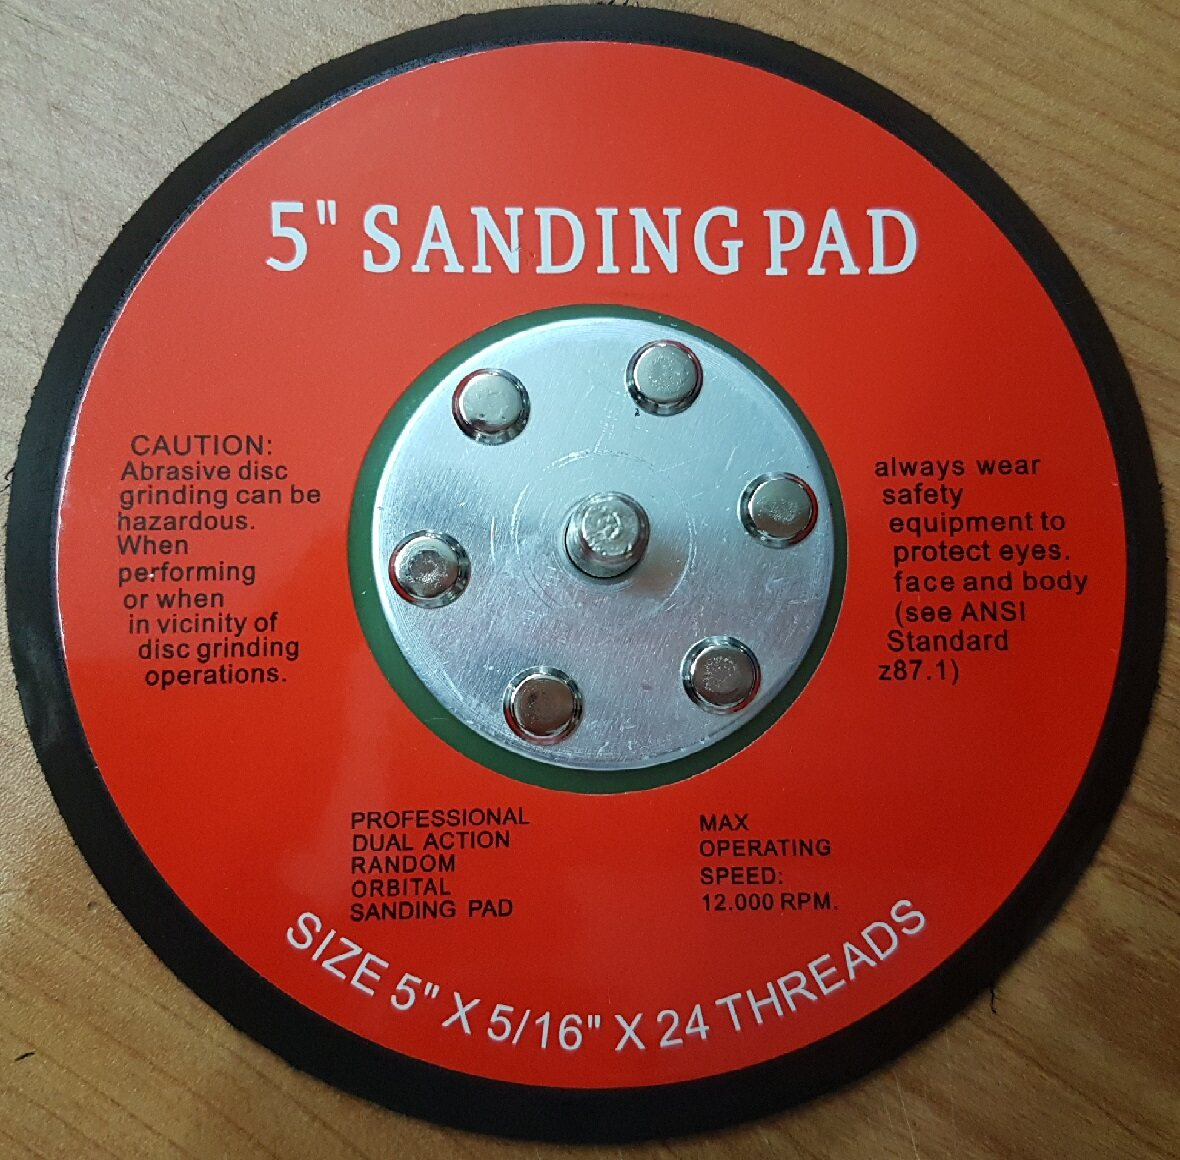 pad net sticker stick sander sanding paper grinding cleaner finishing flap plate disc power side slide shear press high pressure blade plate cutter angle grinder cutting cut tool metal wheel roll roller rolling handle holder hold holding sand sander lock